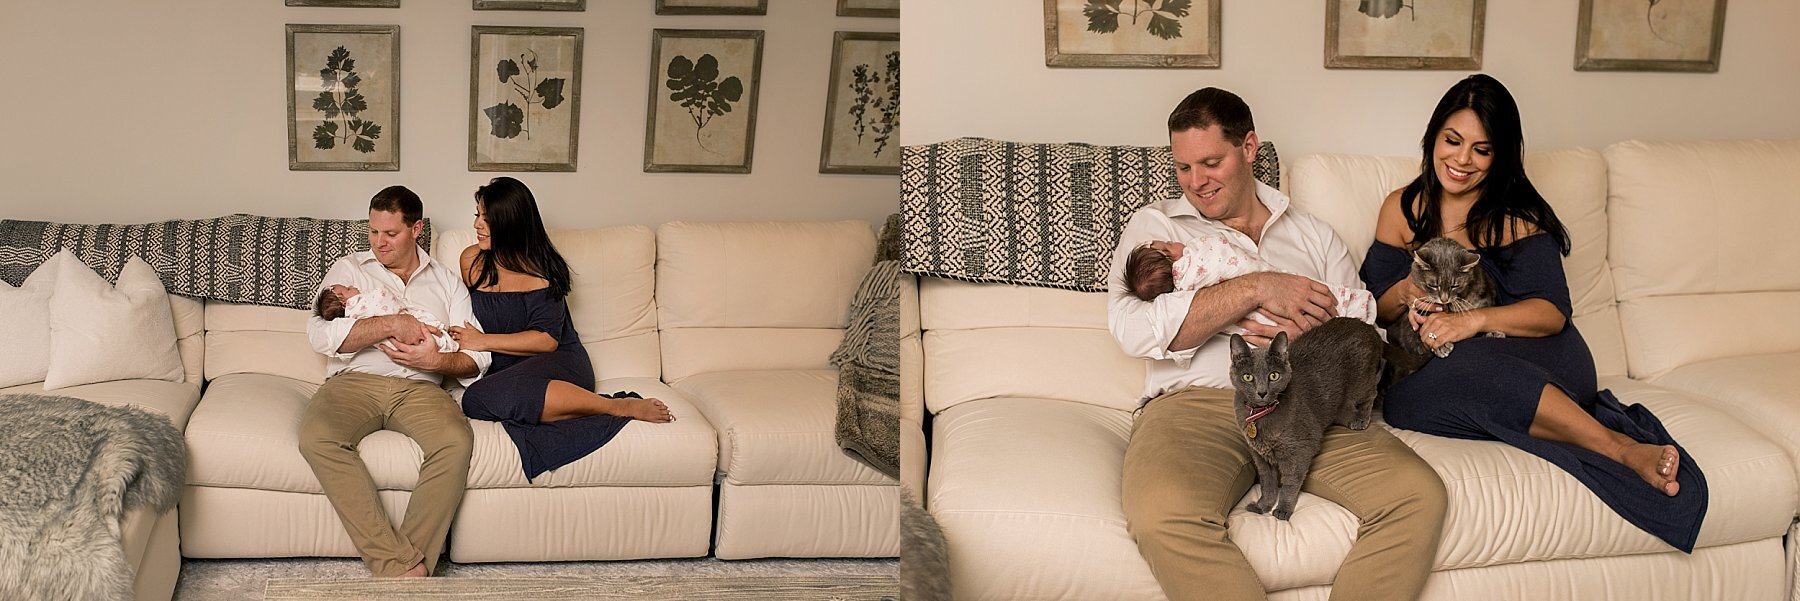 lifestyle newborn photographer in connecticut